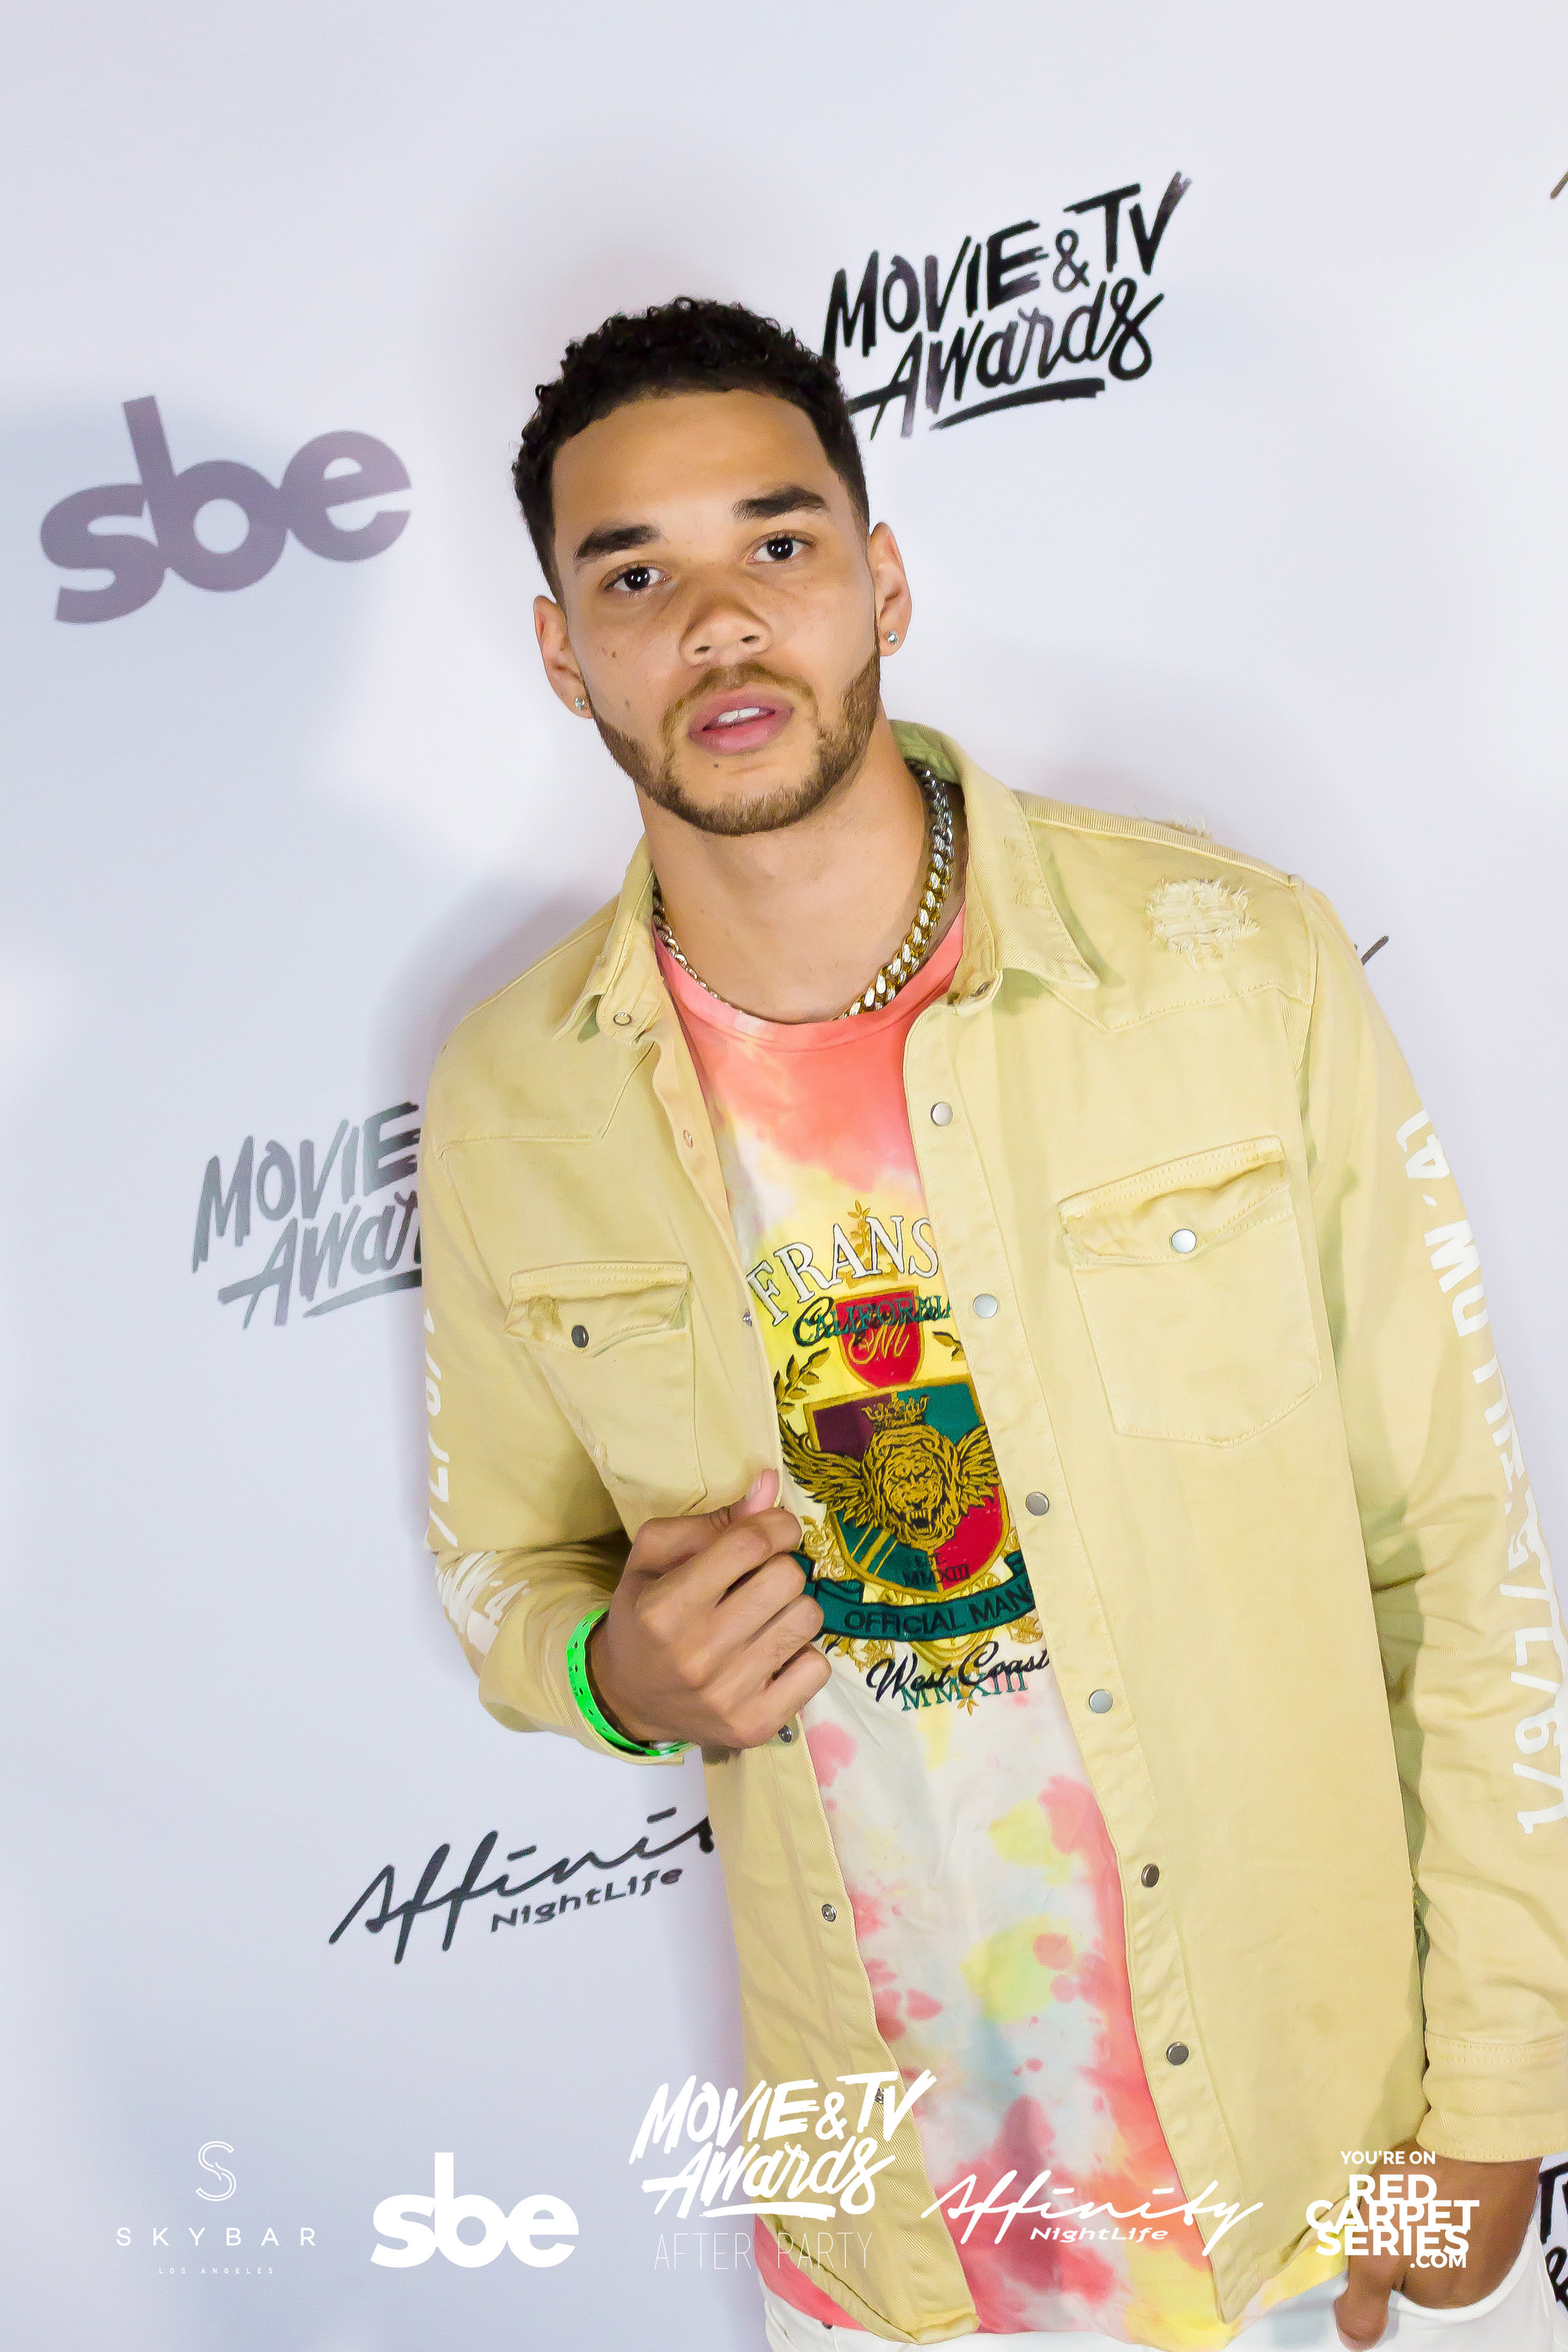 Affinity Nightlife MTV Movie & TV Awards After Party - Skybar at Mondrian - 06-15-19 - Vol. 2_11.jpg